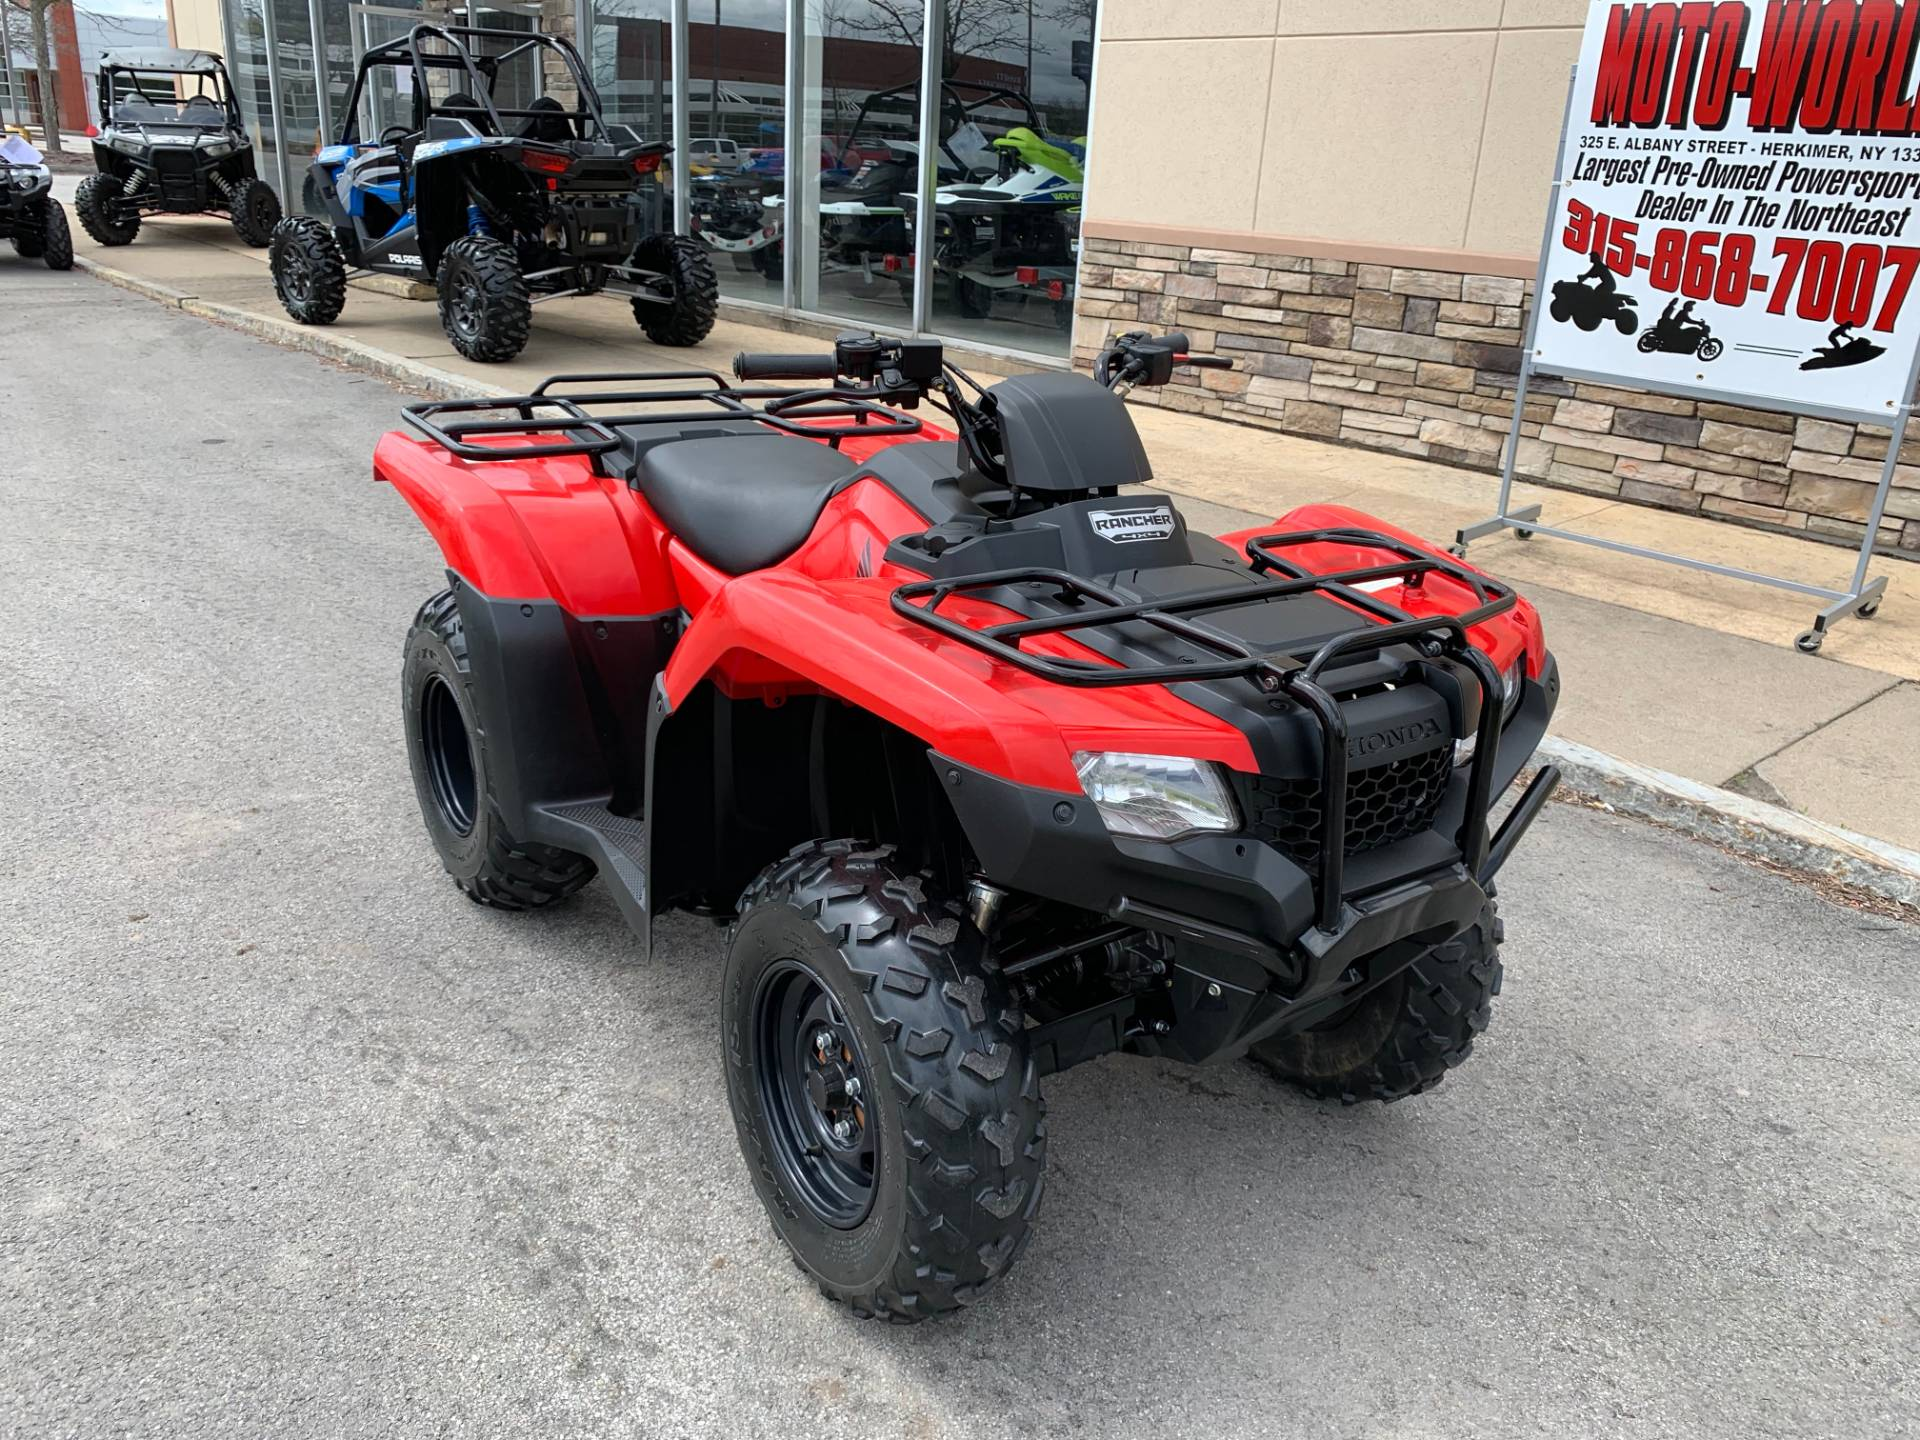 2018 Honda FourTrax Rancher 4x4 in Herkimer, New York - Photo 3